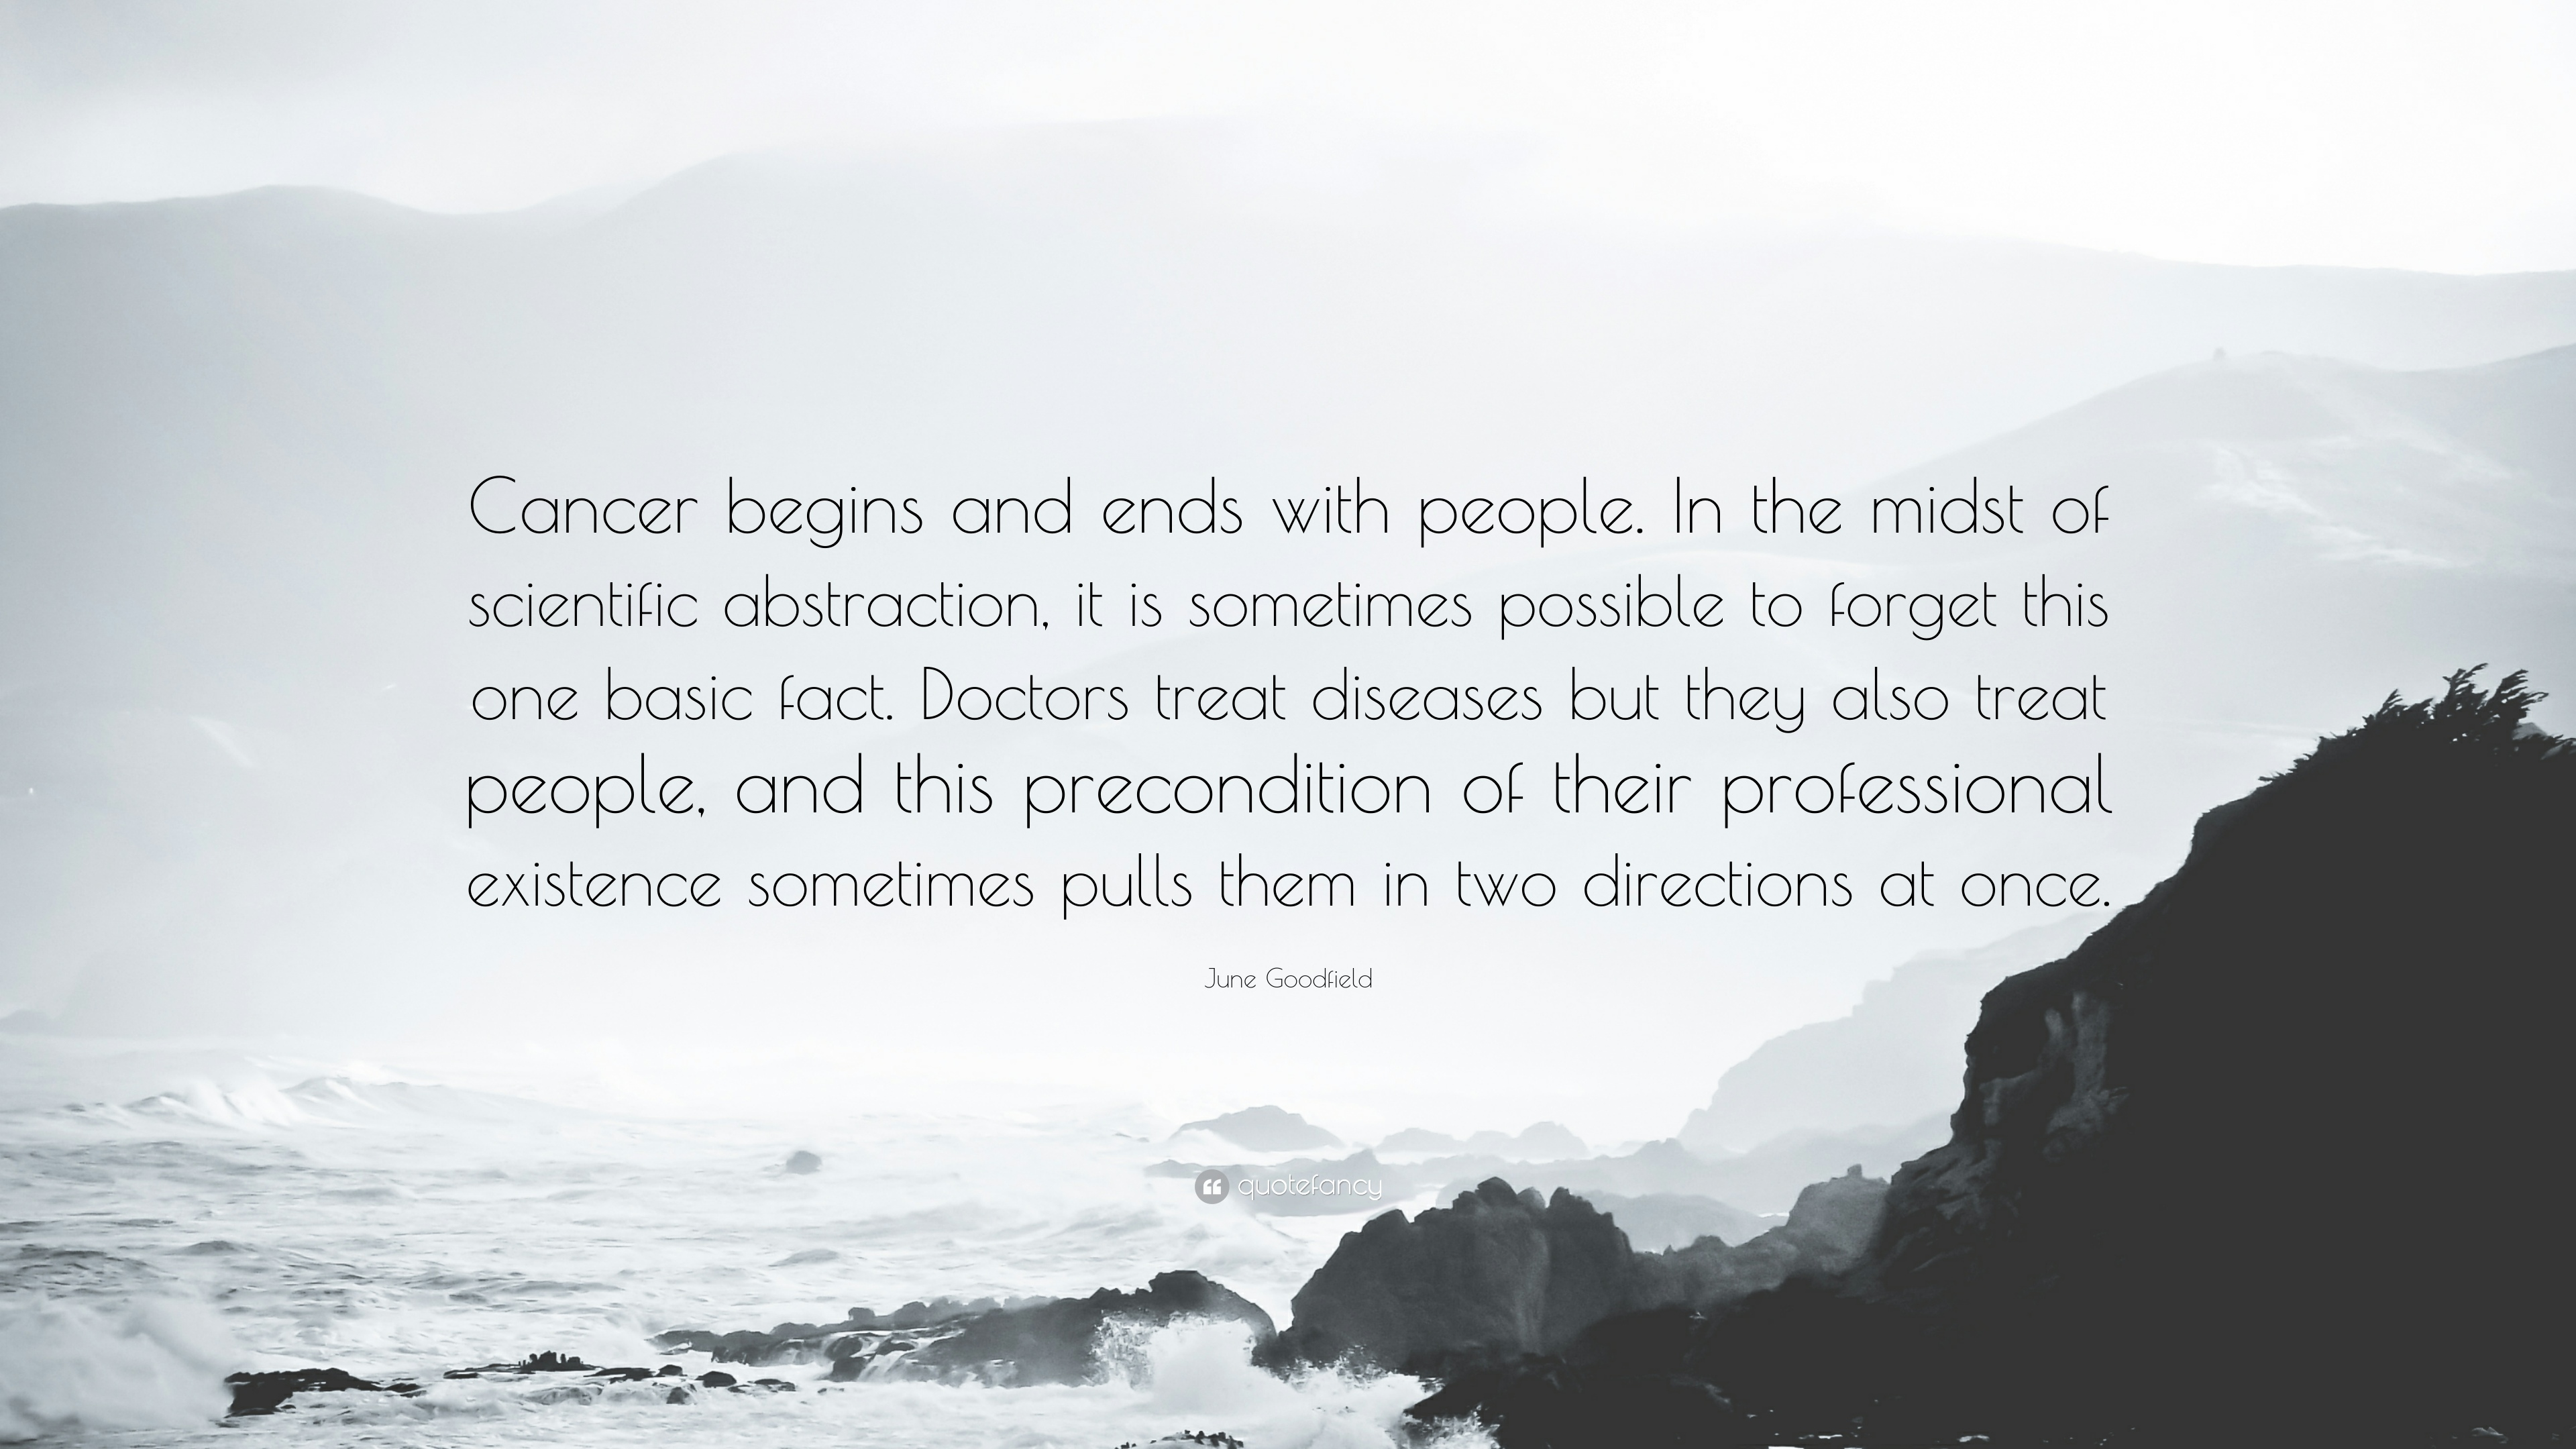 Quotes About Cancer June Goodfield Quotes 3 Wallpapers  Quotefancy